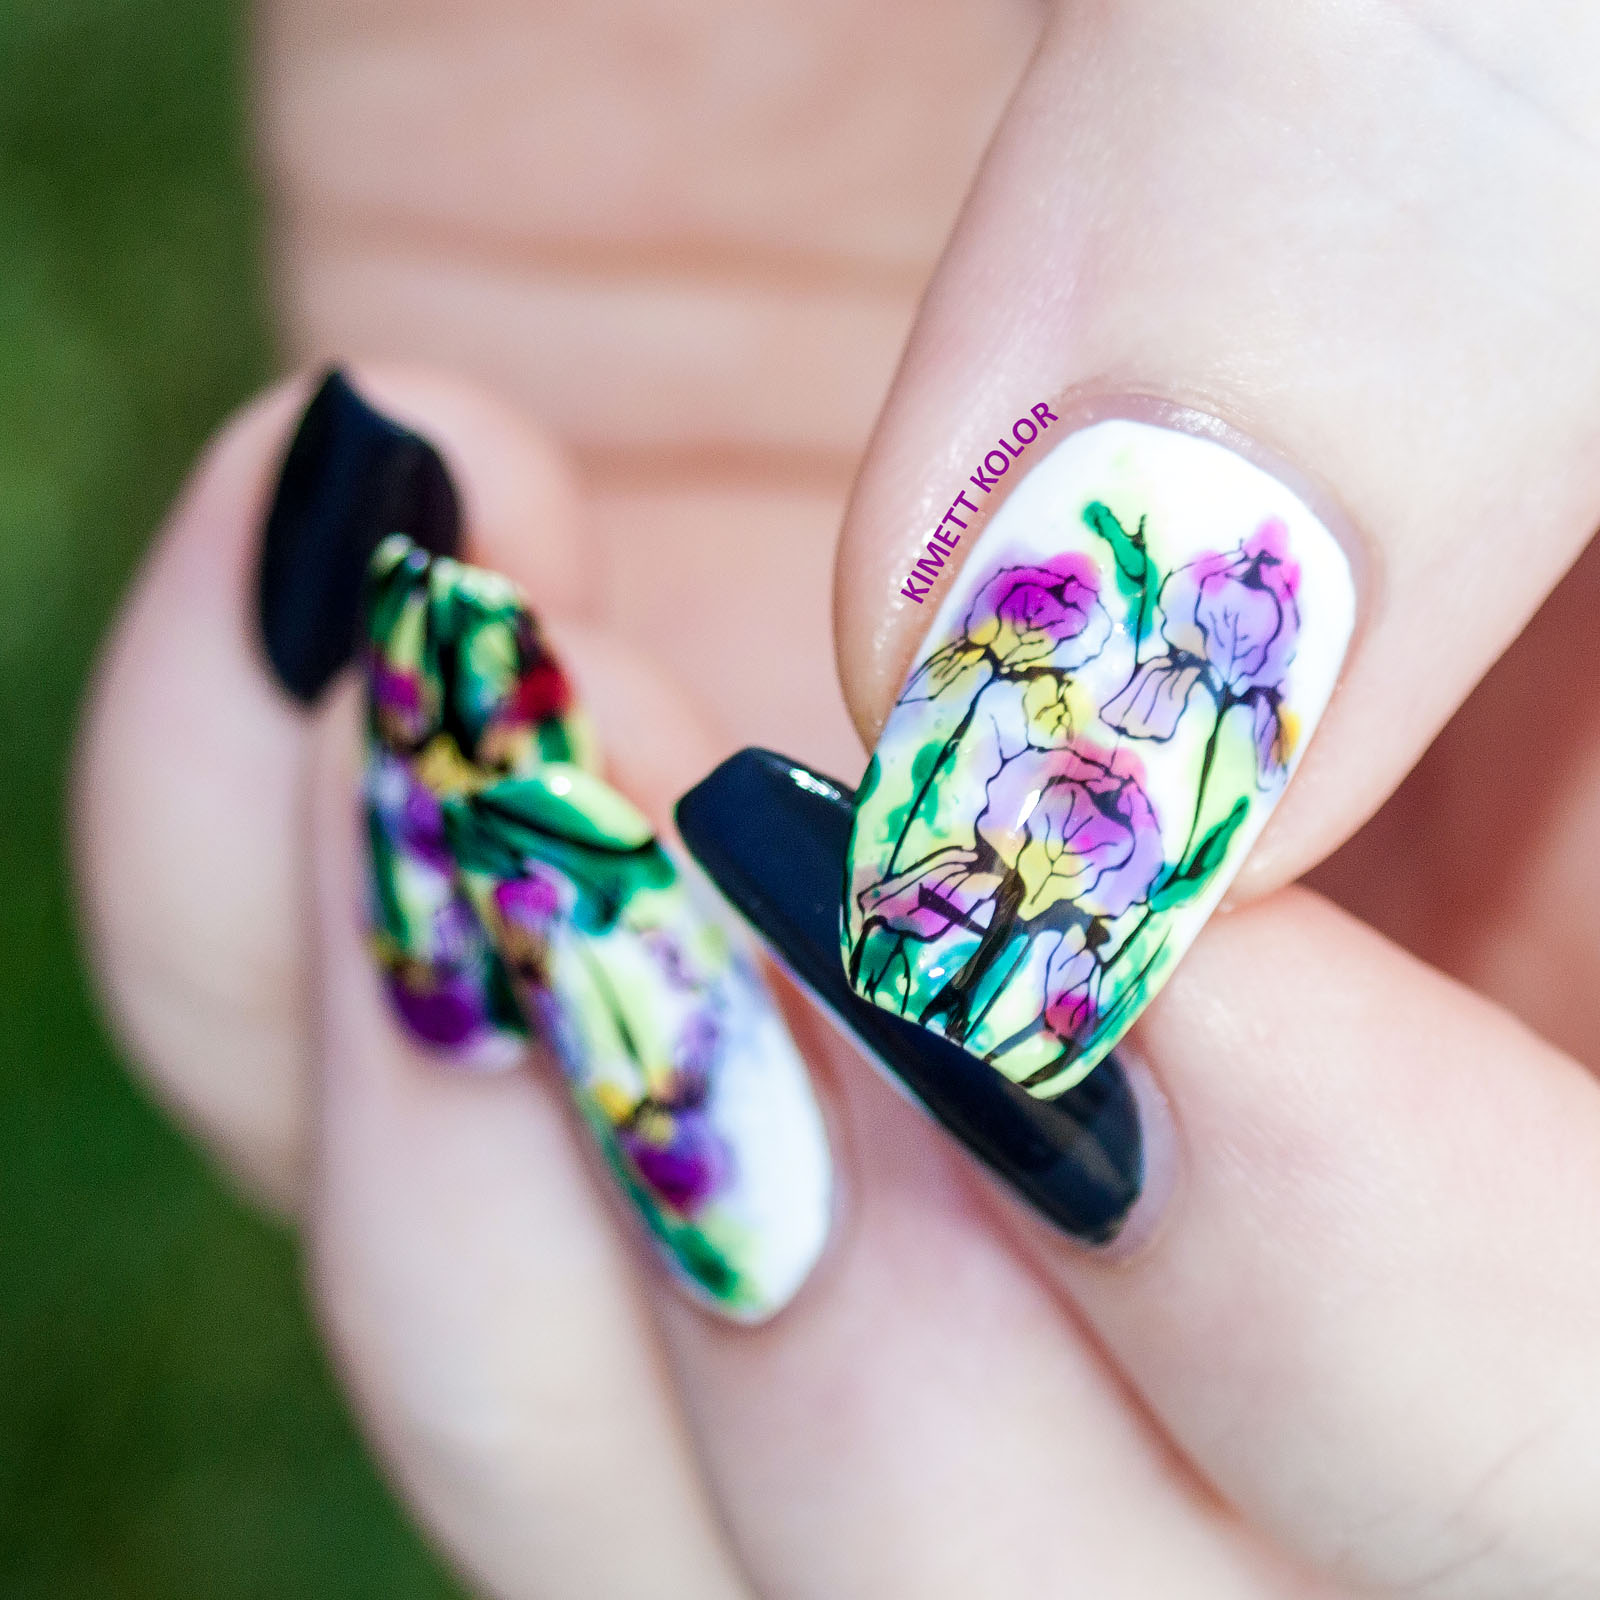 Kimett Kolor summer floral nail art